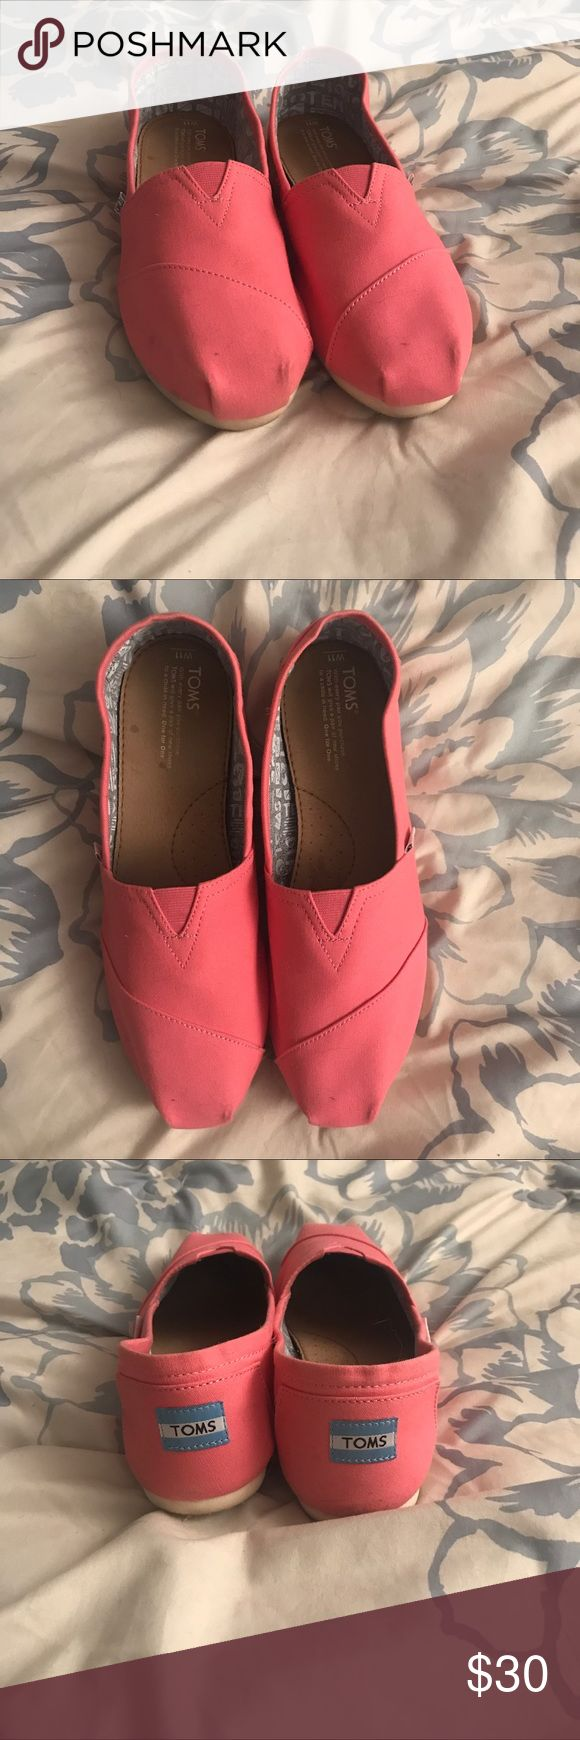 Women's pink toms Only worn twice Toms Shoes Flats & Loafers